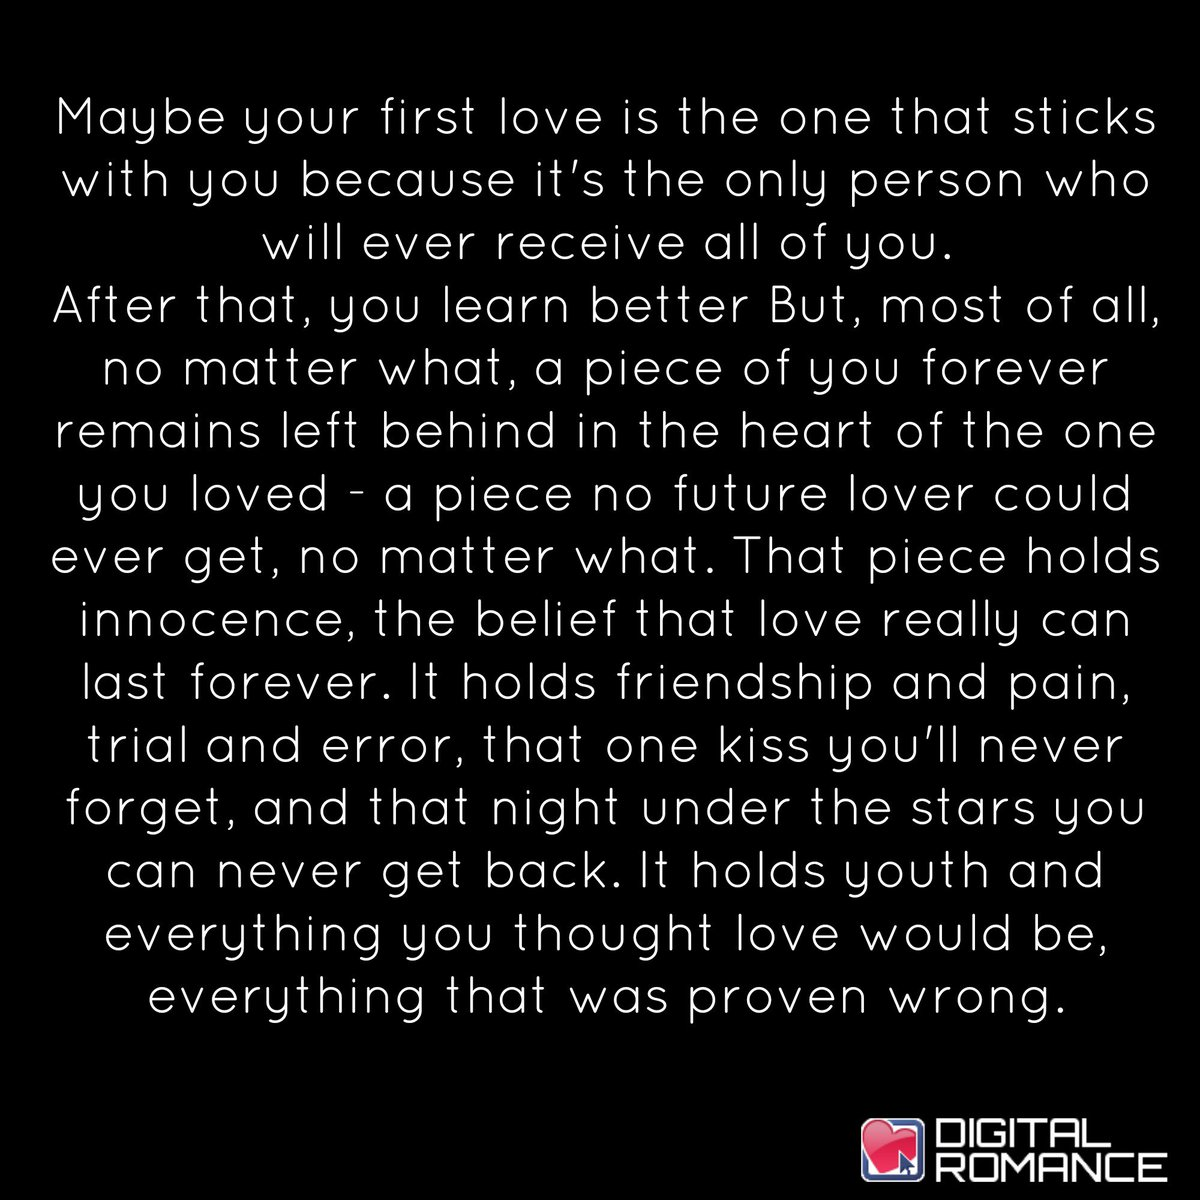 Digital Romance Inc On Twitter Maybe Your First Love Is The One That Sticks With You Because Its The Only Person Who Relationships Quotes